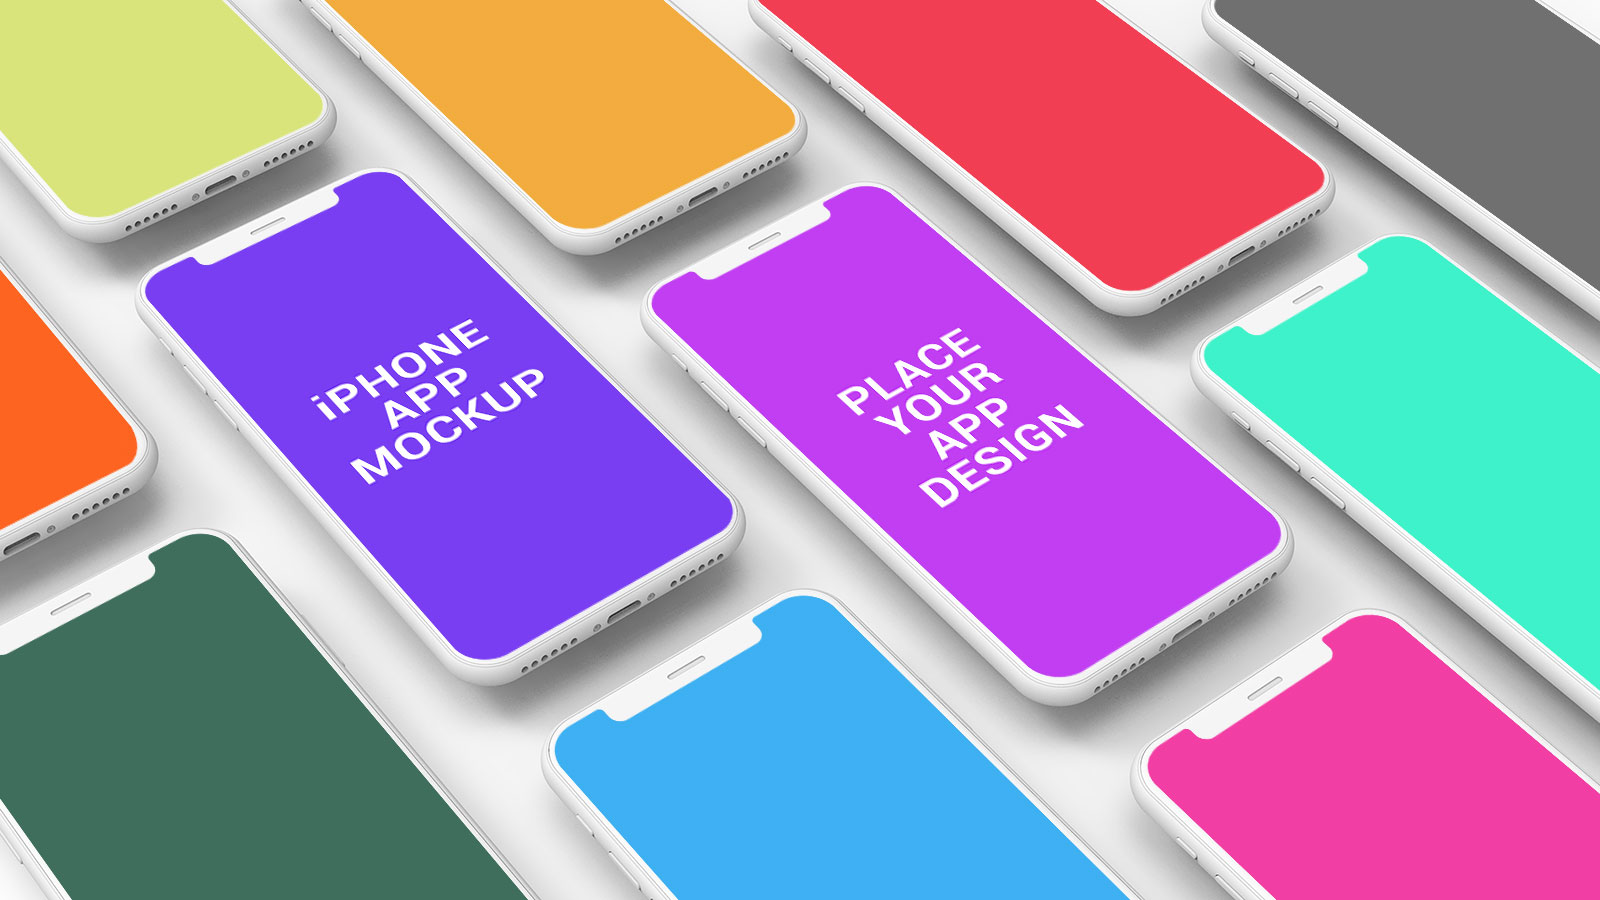 Free-Perspective-iPhone-App-Screen-Mockup-PSD